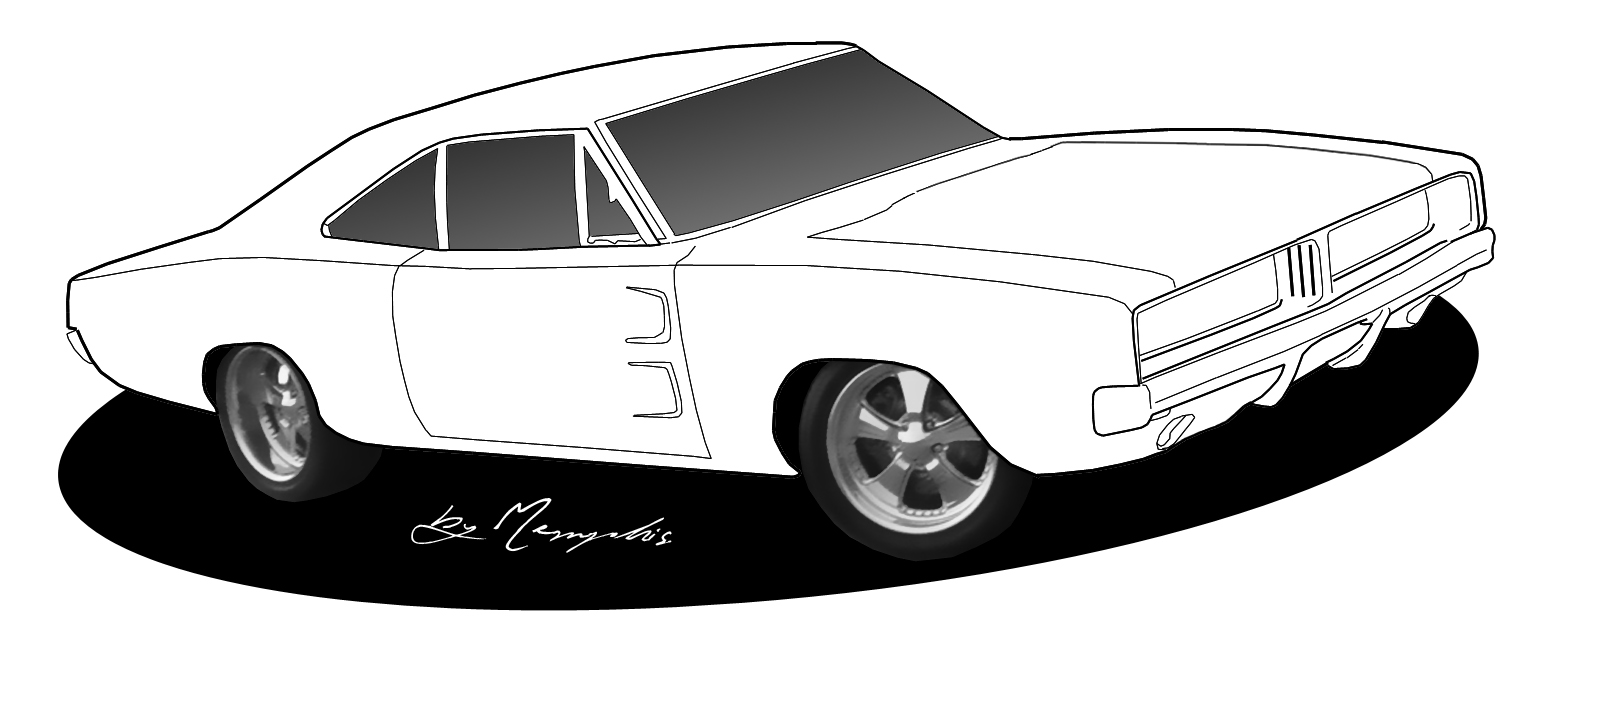 pictures of cars to print and colour race car coloring pages free printable pictures coloring colour pictures of to print cars and